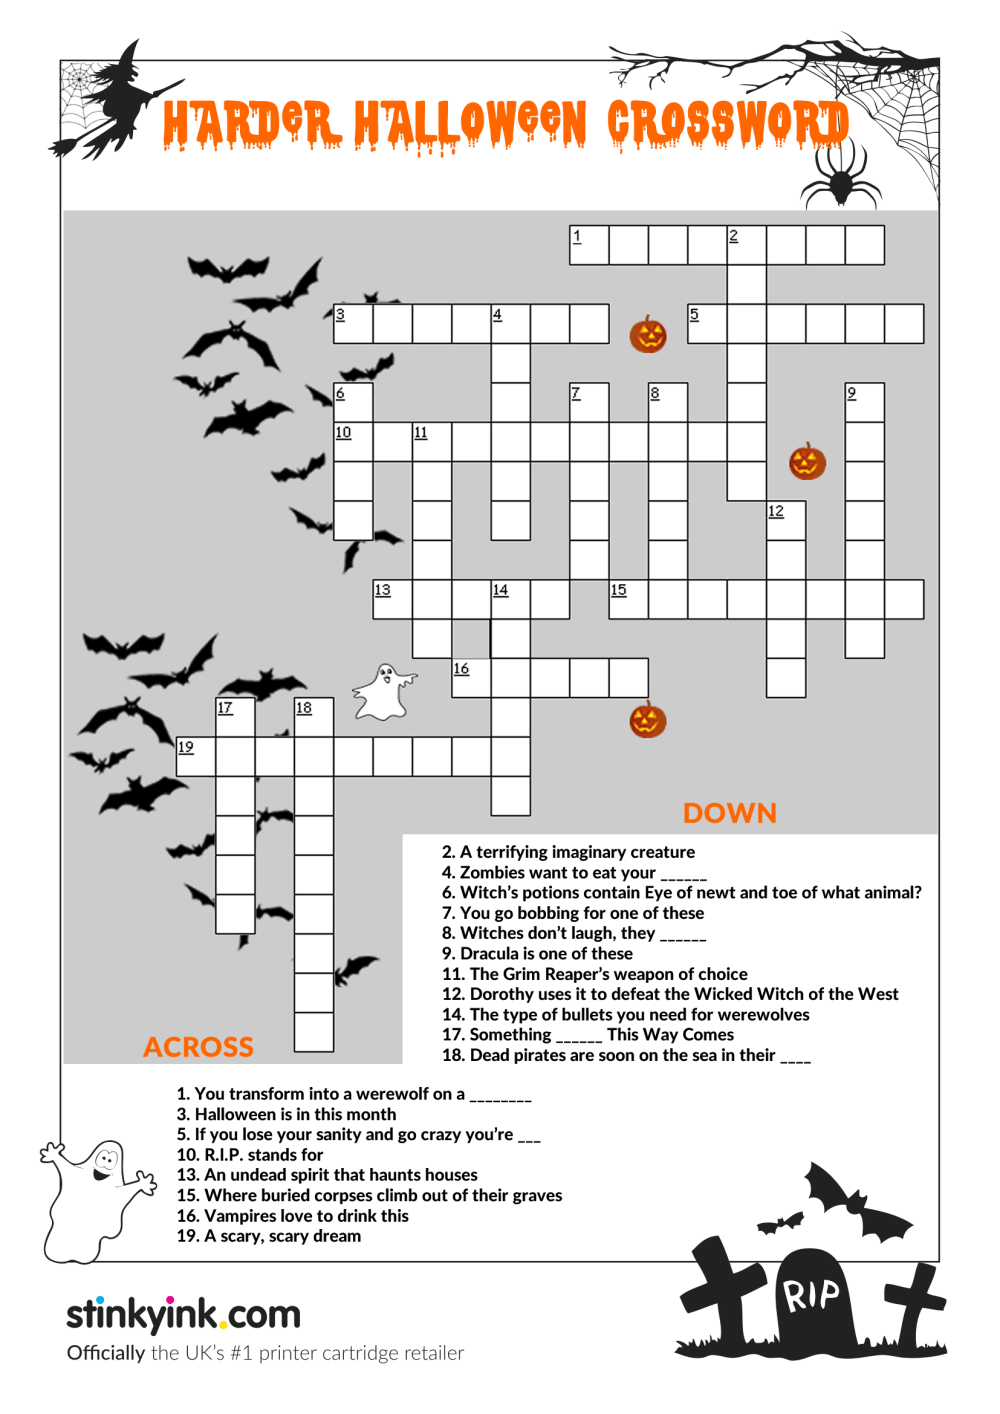 medium resolution of Halloween Crossword Puzzle Worksheet   Printable Worksheets and Activities  for Teachers